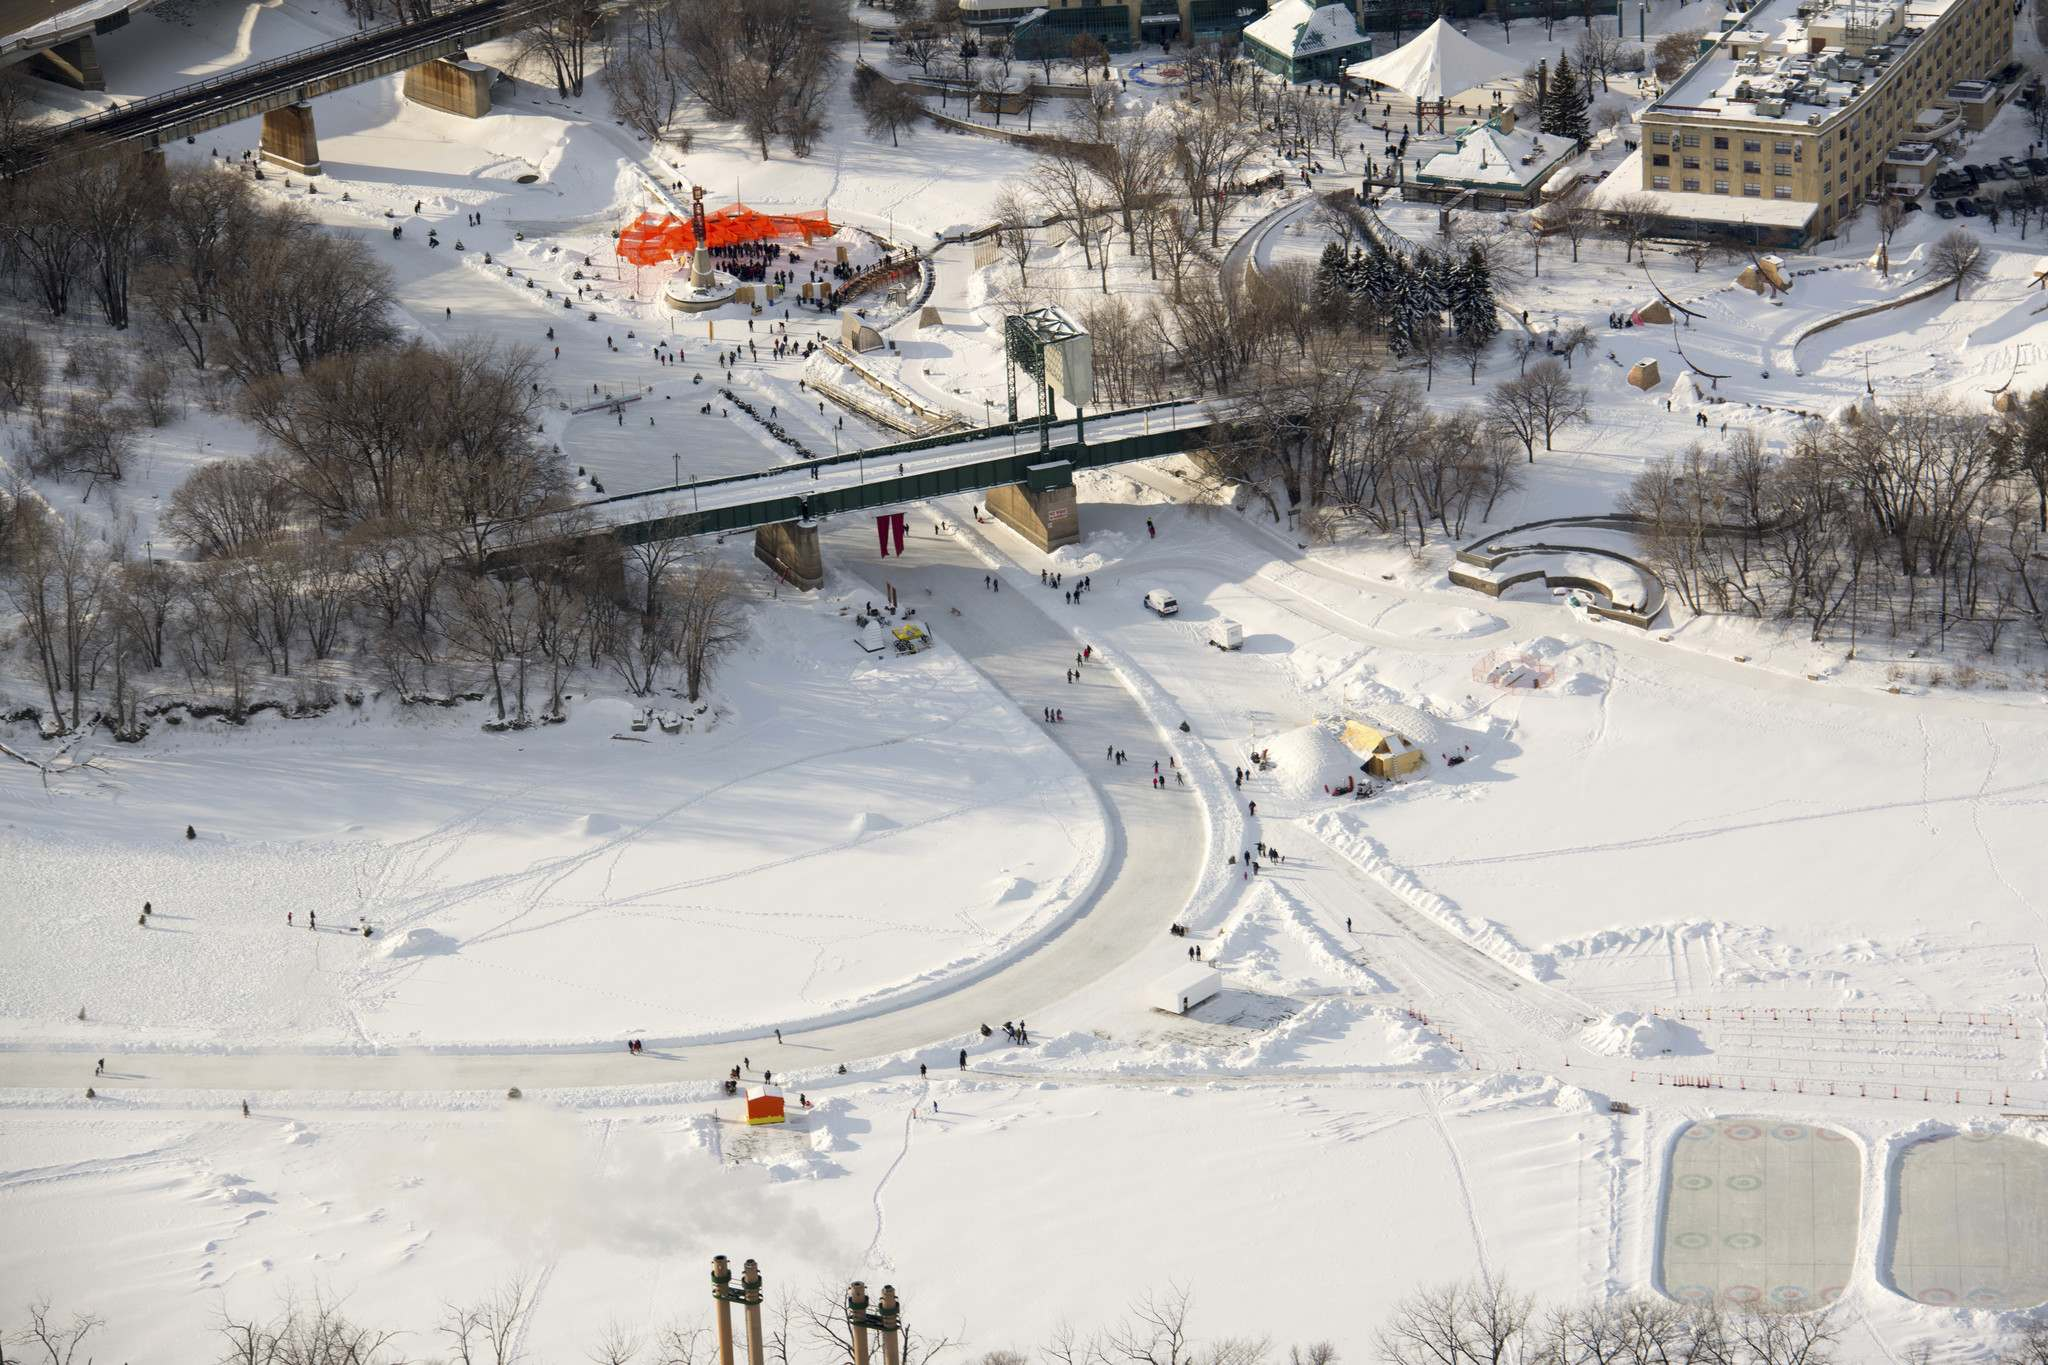 In the winter, the Red and Assiniboine Rivers come alive with people, activity, art and creativity. (Dan Harper photo)